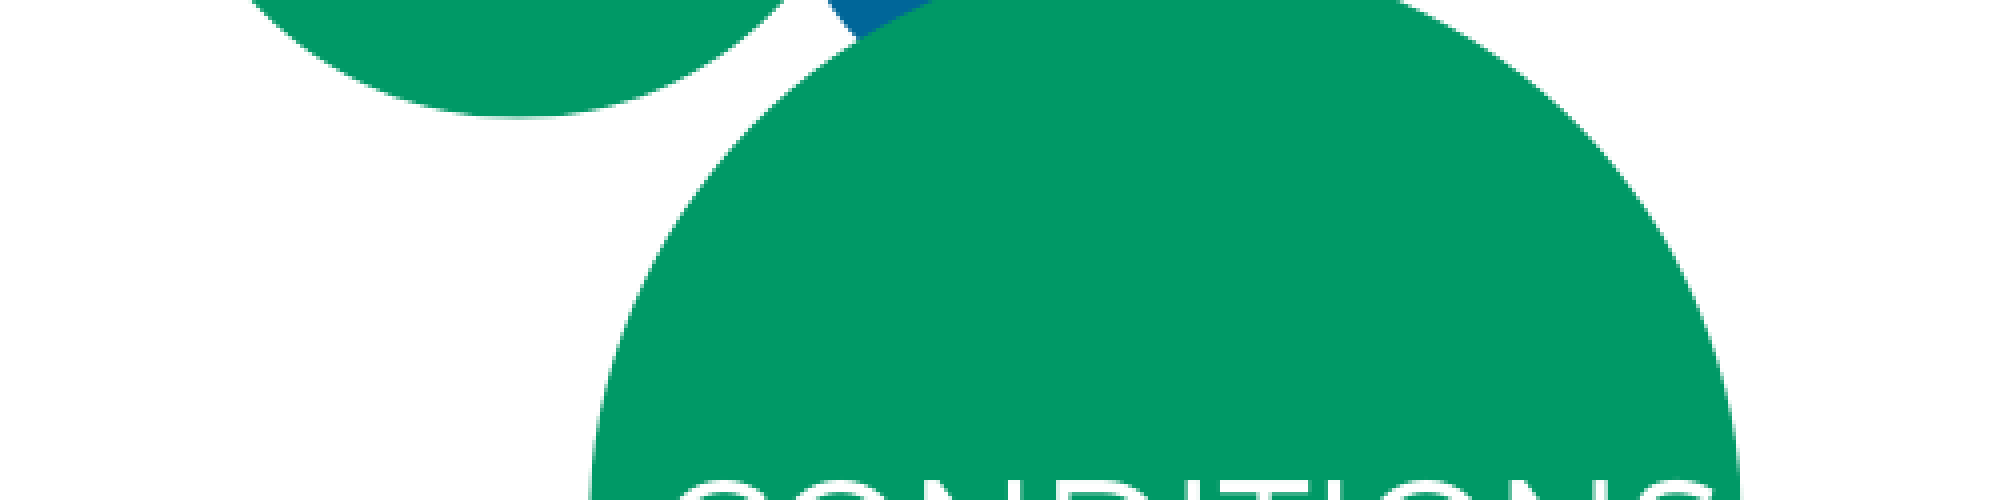 Terms & Conditions for the website of Ros Boundy